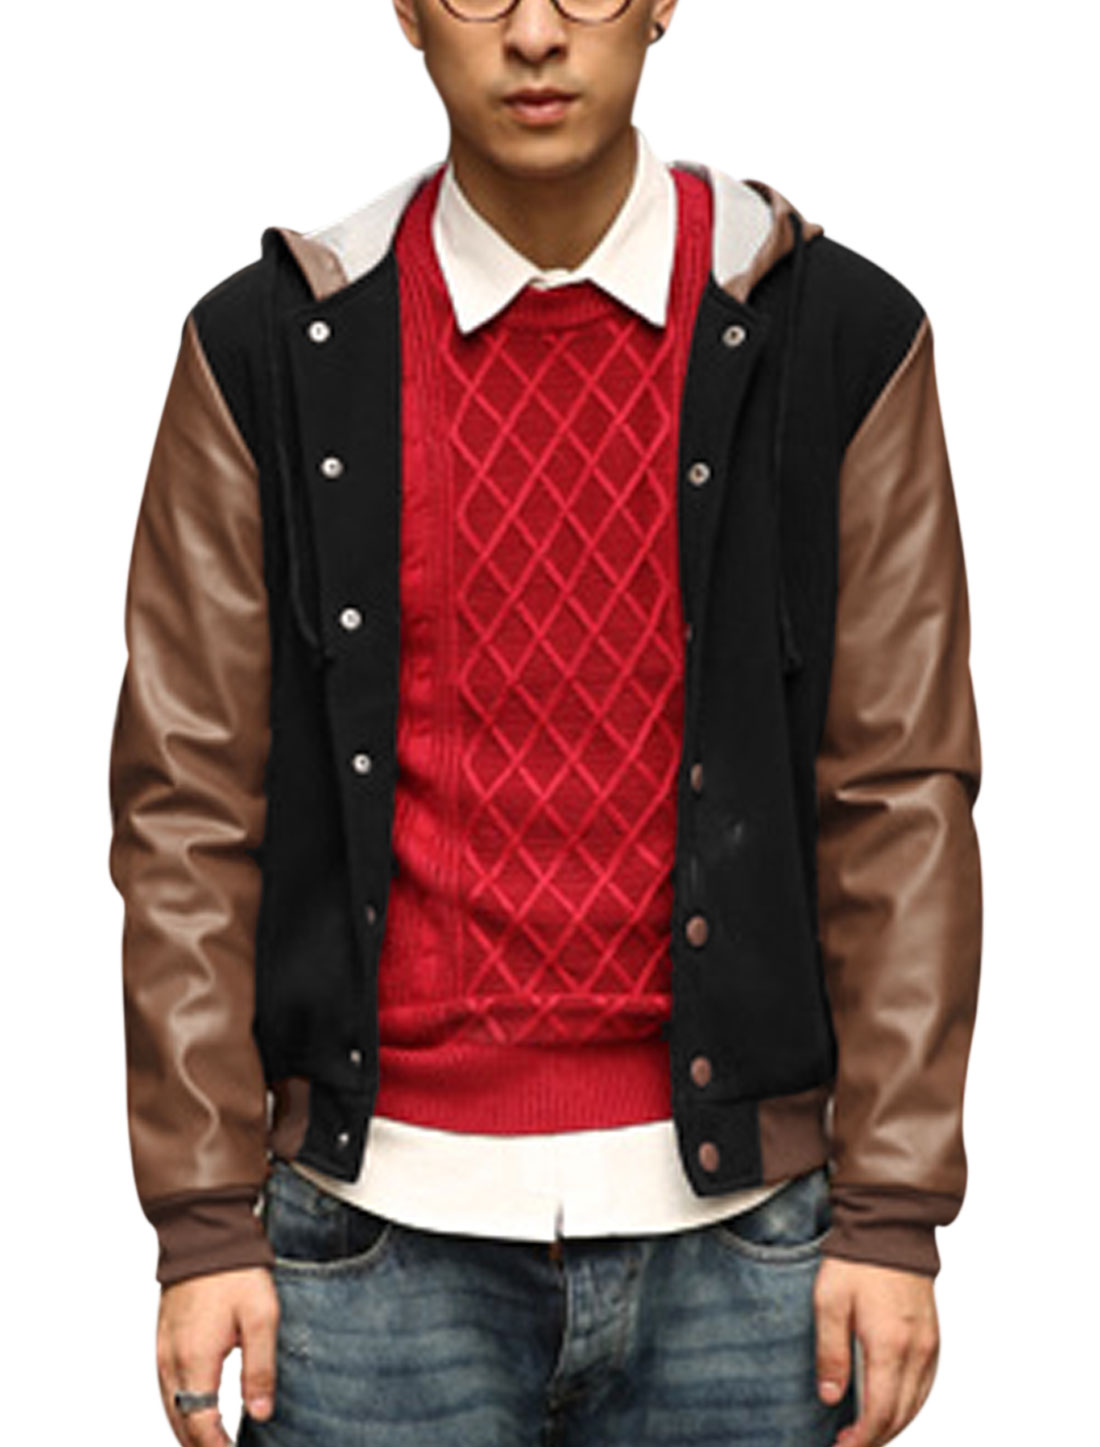 Men Imitation Leather Spliced Hooded Front Pockets Casual Jacket Black Brown M